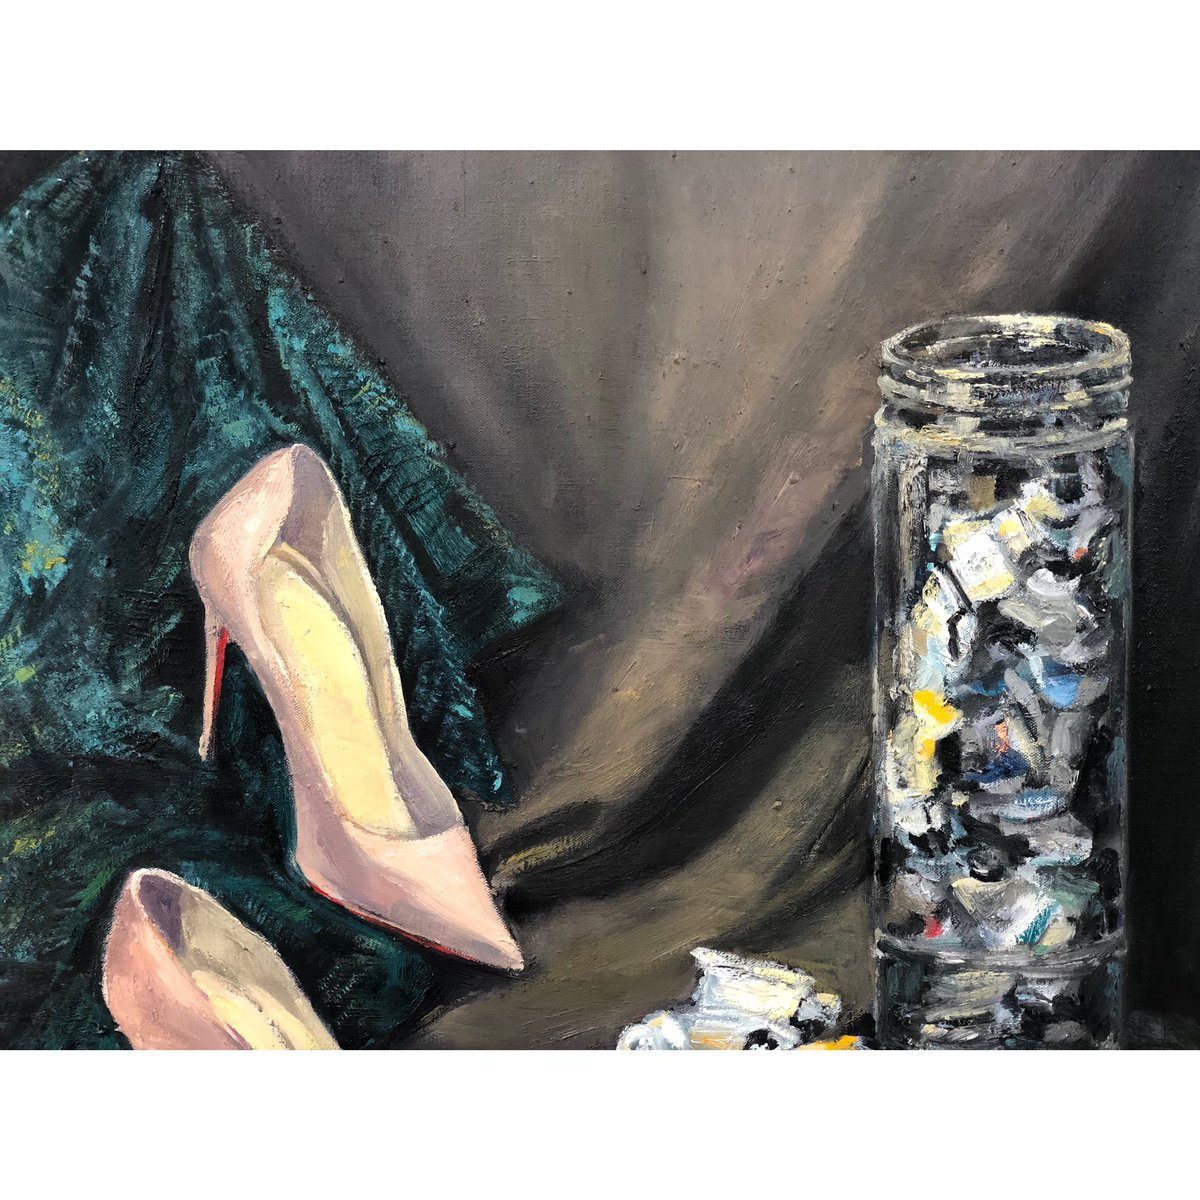 After finished, here you are a part of my artwork. #guarchart #guarch #art #artist #art_realism_ #artwork #artistsoninstagram #gallery #galleryart #supportartists #oilart #paintingeveryday #passionart #creativityeveryday #stilllifepainting #bcnart #artsales #thestrokes #brushespic.twitter.com/cCmLxQlNTt